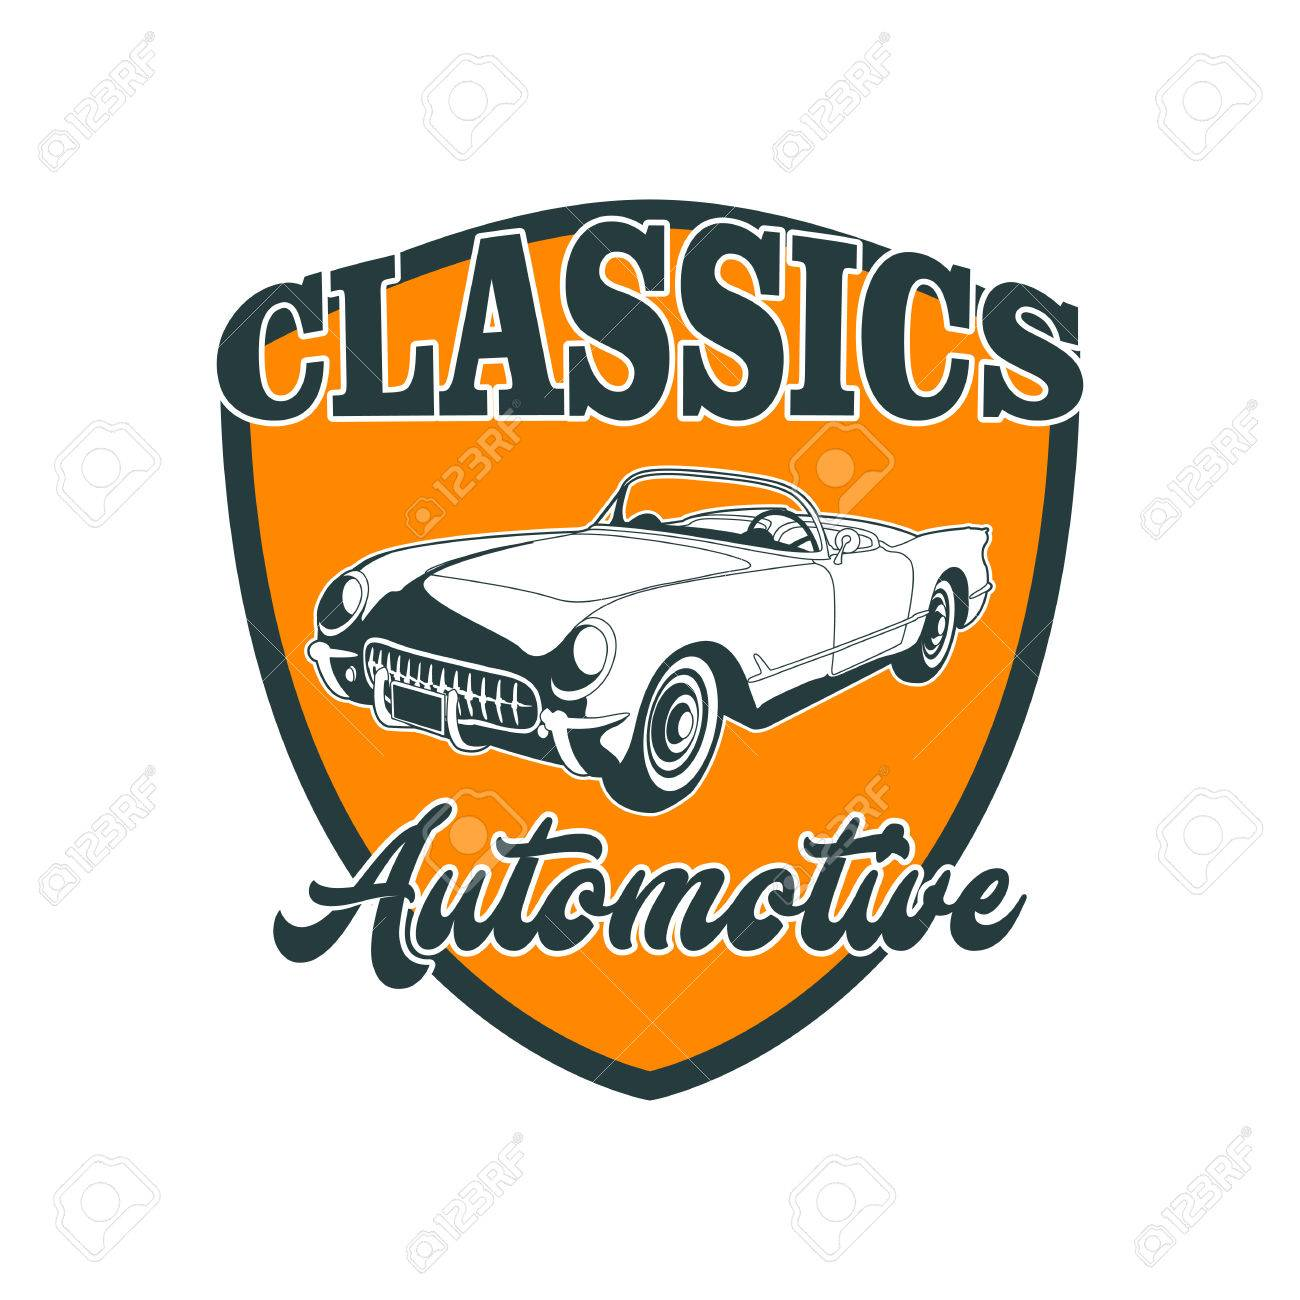 classic muscle car emblems high quality retro badge and vintage rh hu 123rf com Auto Mechanic Drawings Auto Mechanic Logo Clip Art